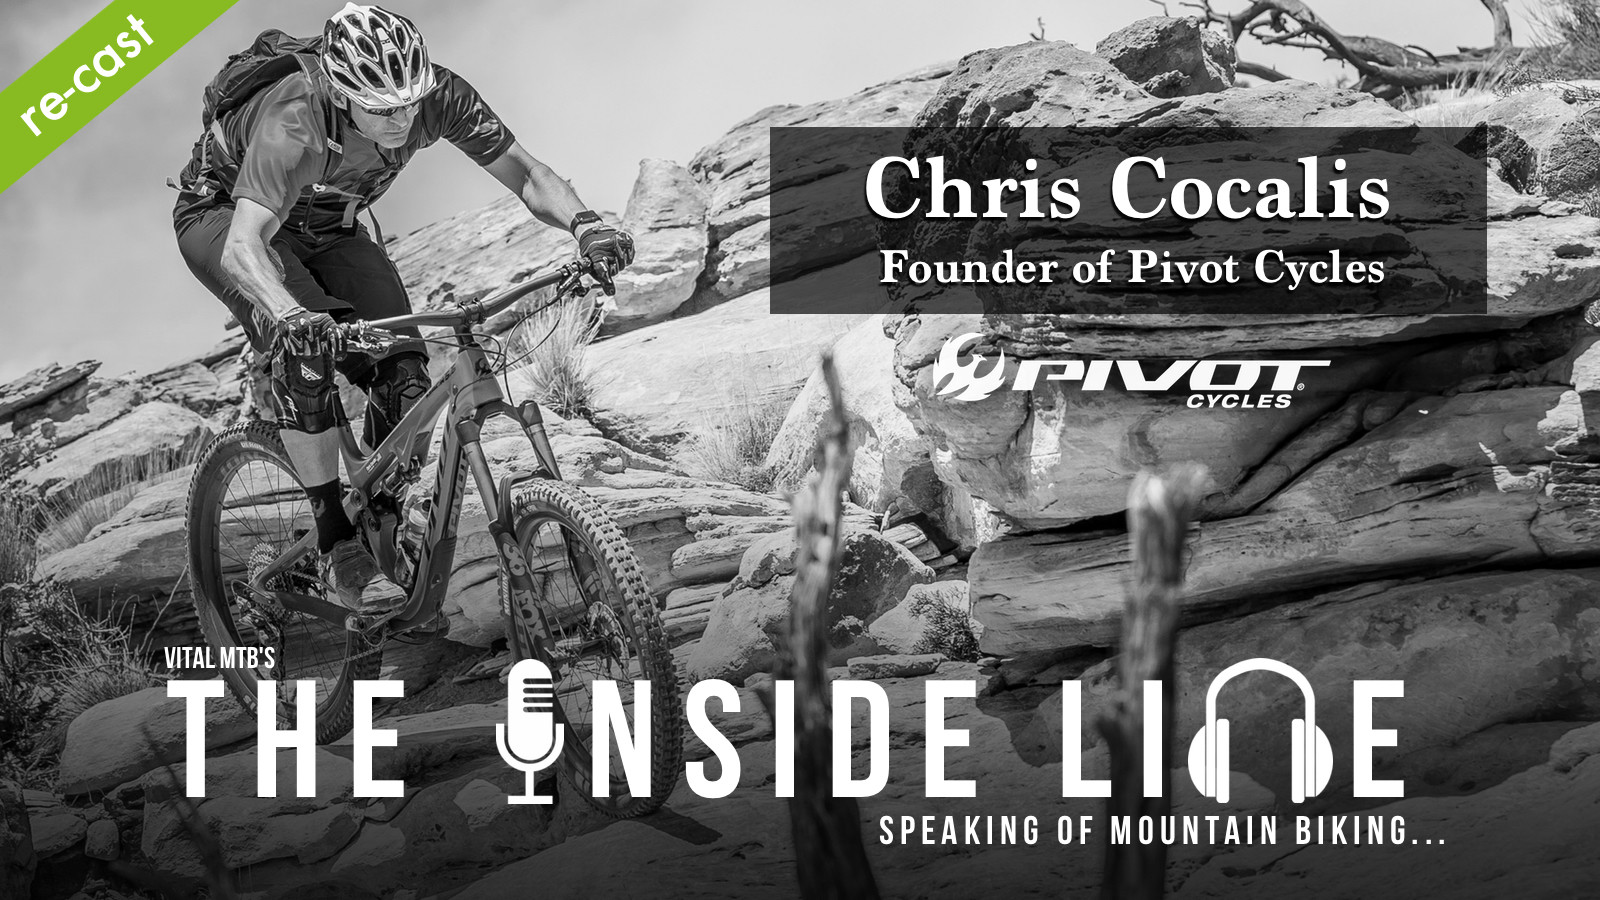 The Inside Line Podcast - Re-Cast: Chris Cocalis, Founder of Pivot Cycles